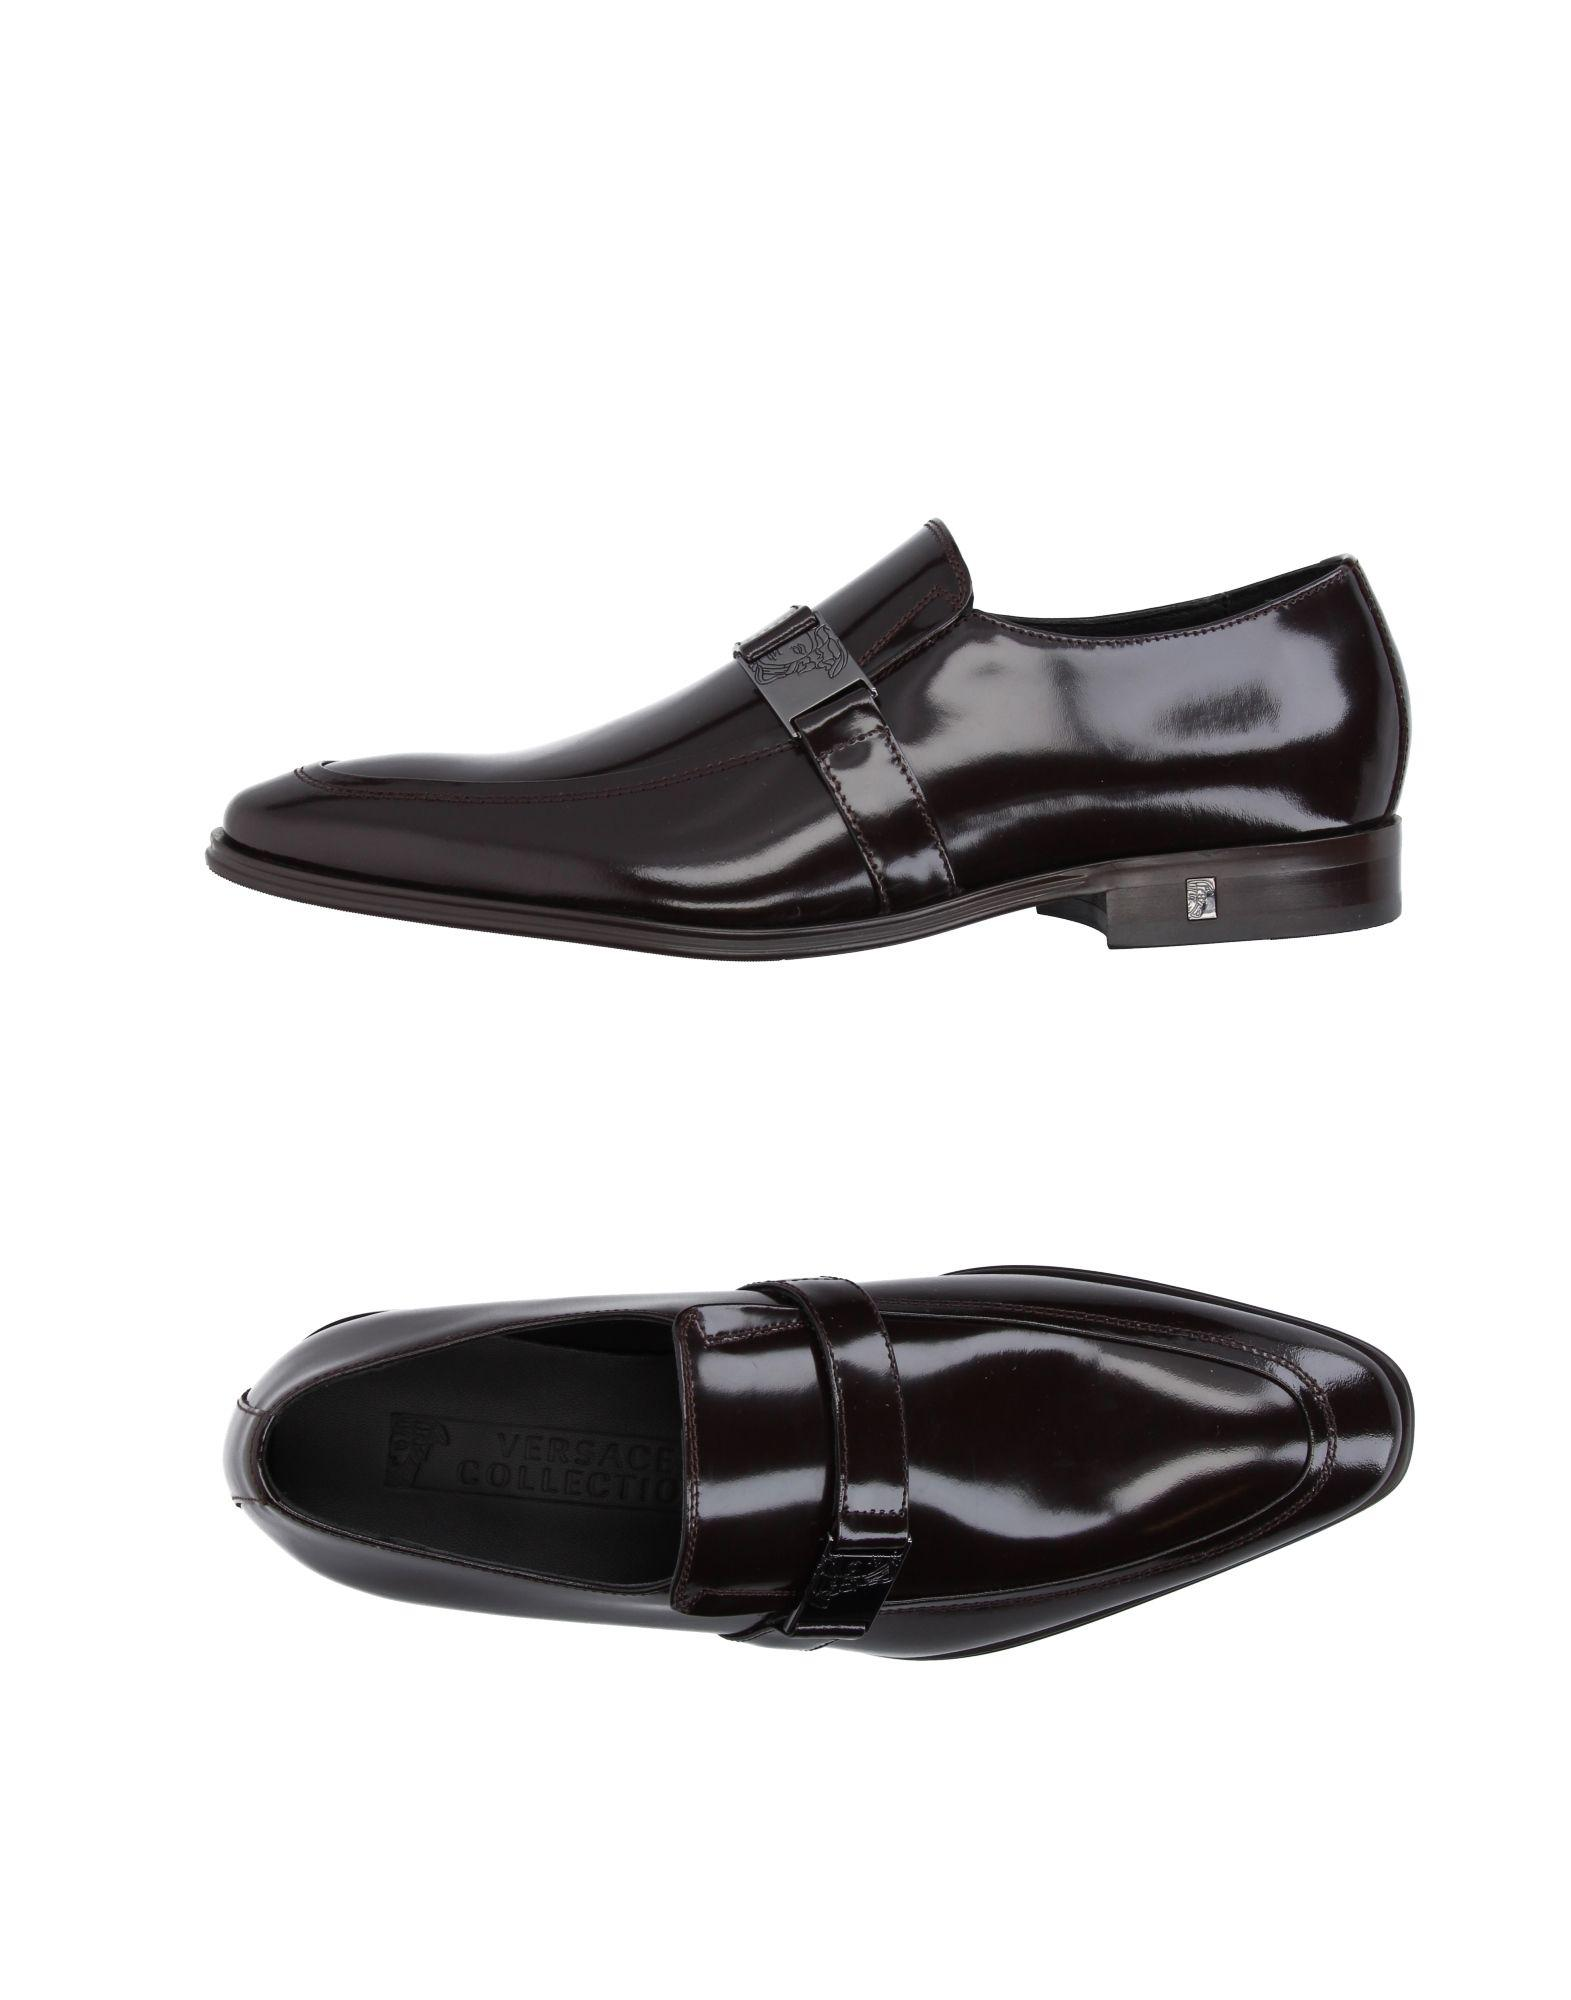 e570d3942d8 Versace Loafer in Brown for Men - Lyst